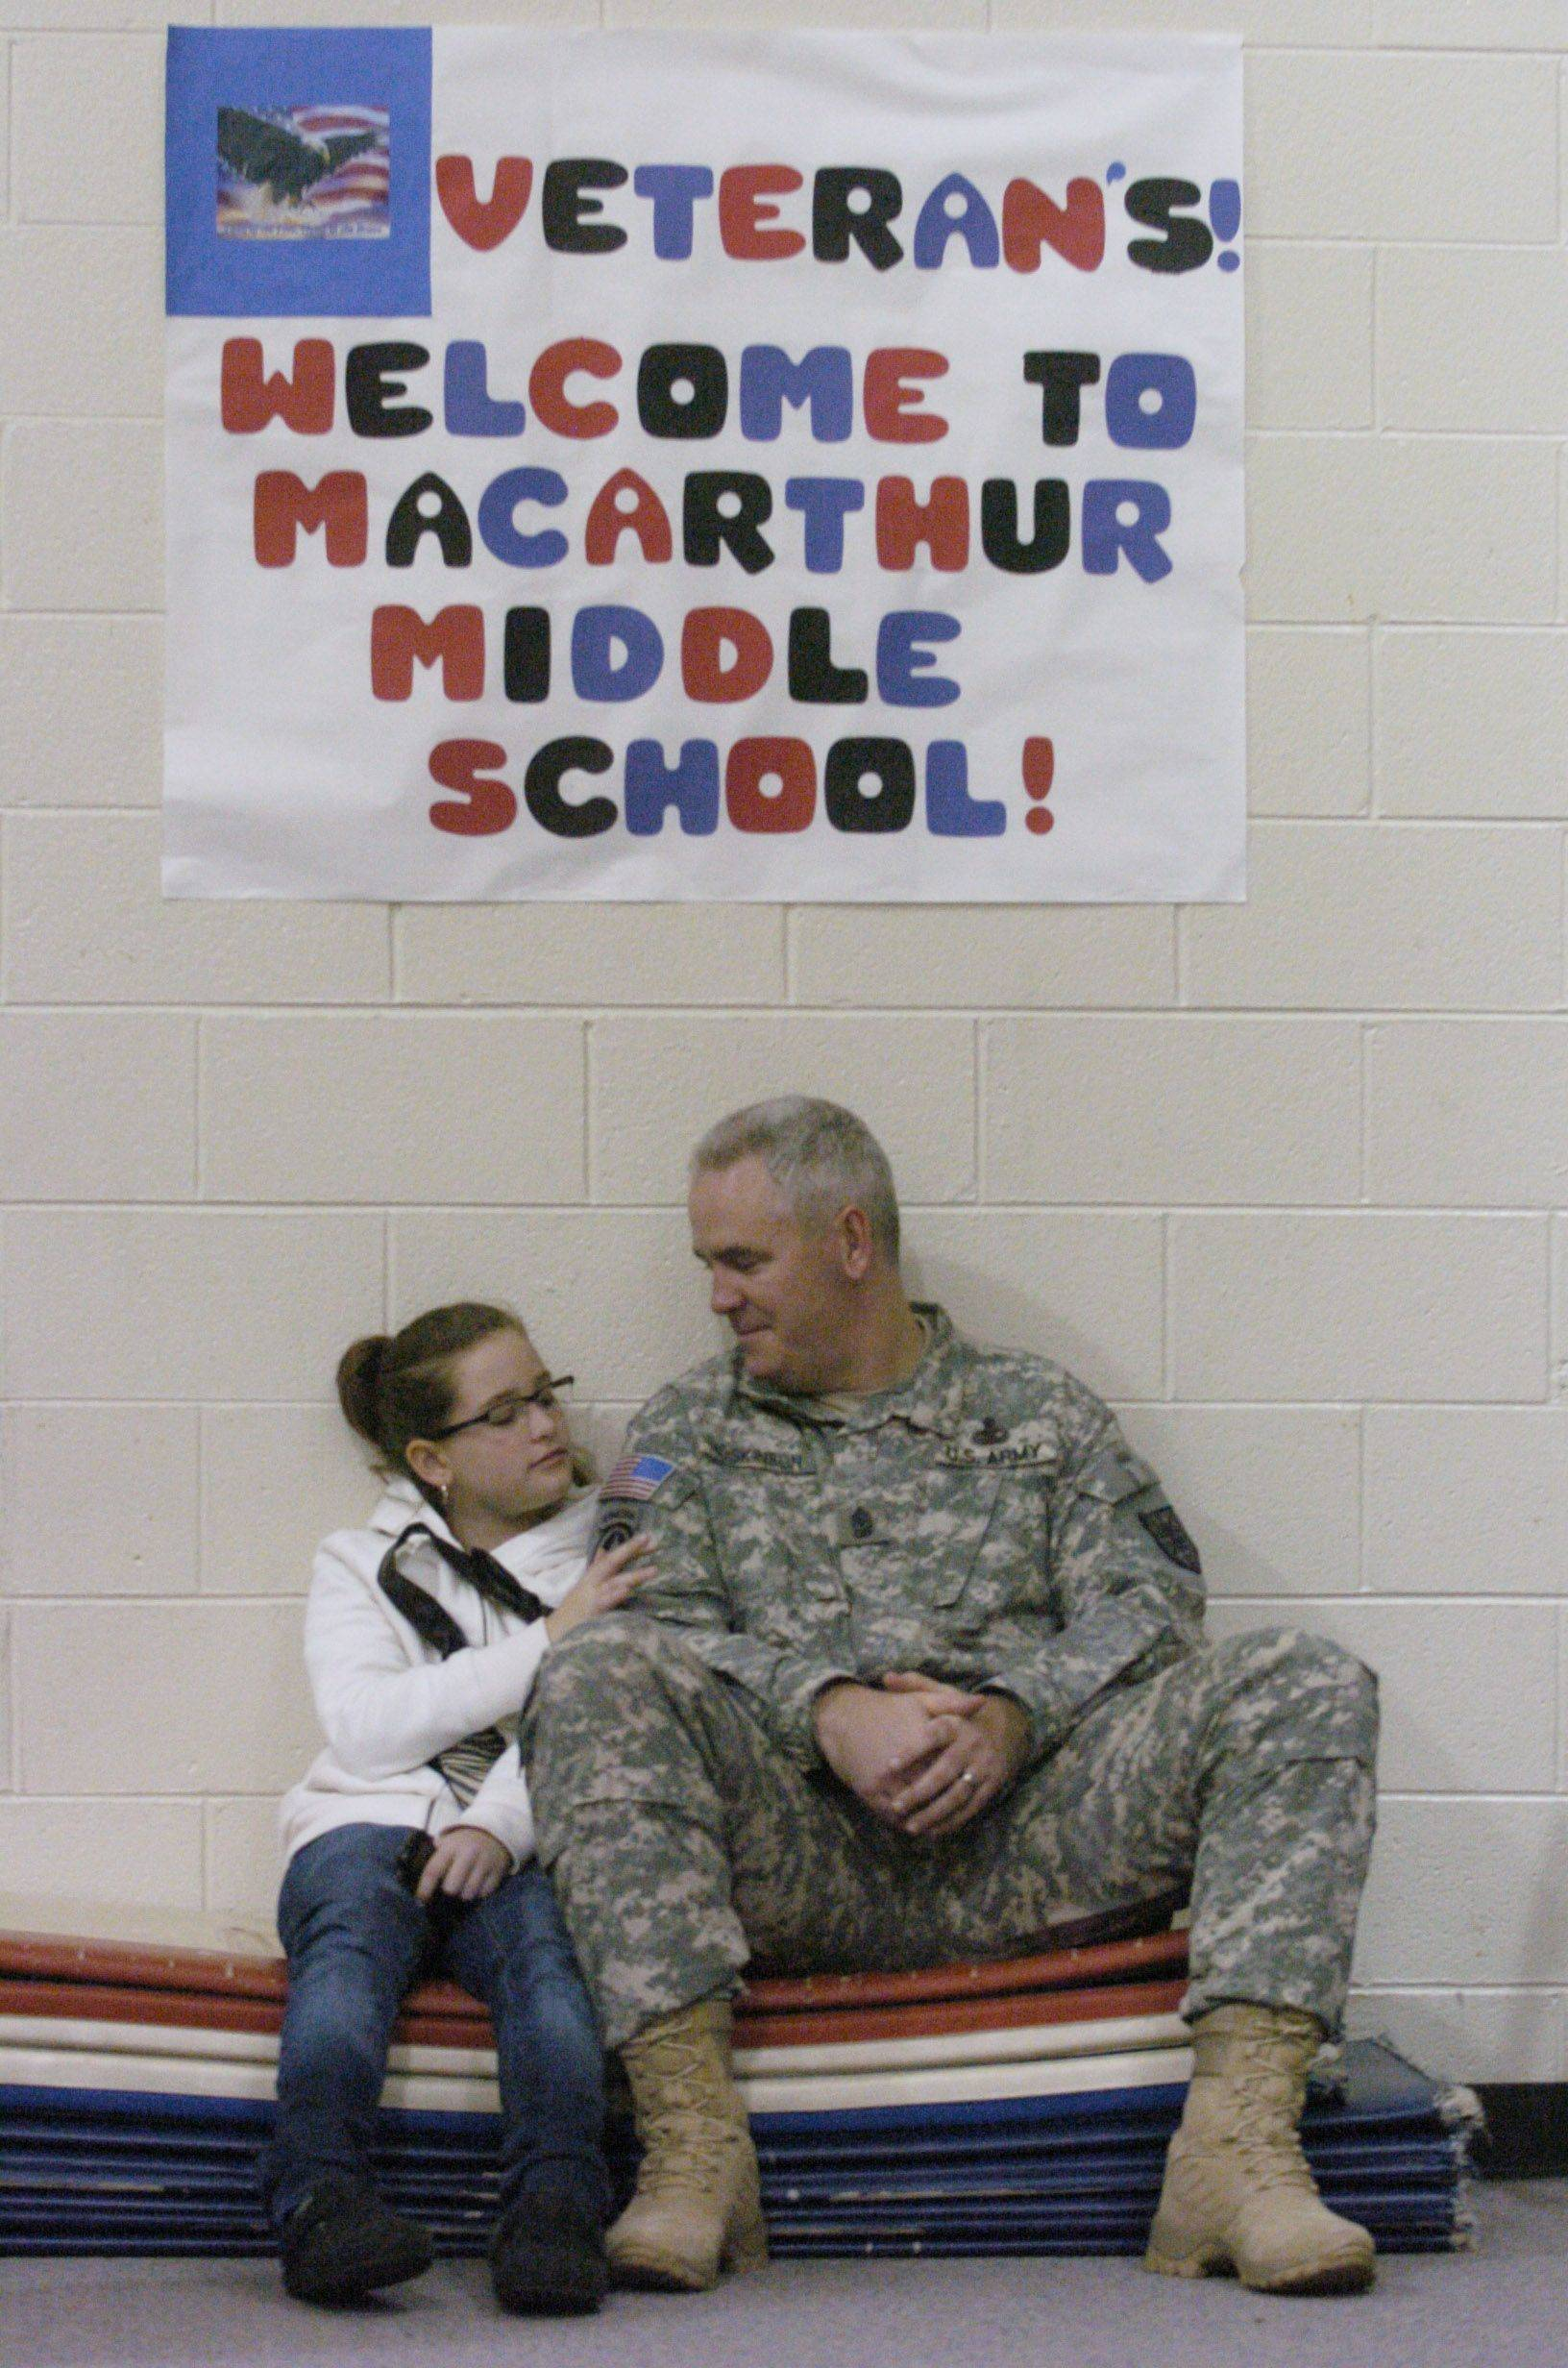 Payton Hoskinson, 9, of Chicago, sits with her dad, Tom, a Sergeant-Major in the U.S. Army Reserves, following a breakfast for Veterans at MacArthur Middle School, Prospect Heights, Thursday. Tom is a Mt. Prospect Police officer who has been deployed with the Army in Afghanistan.